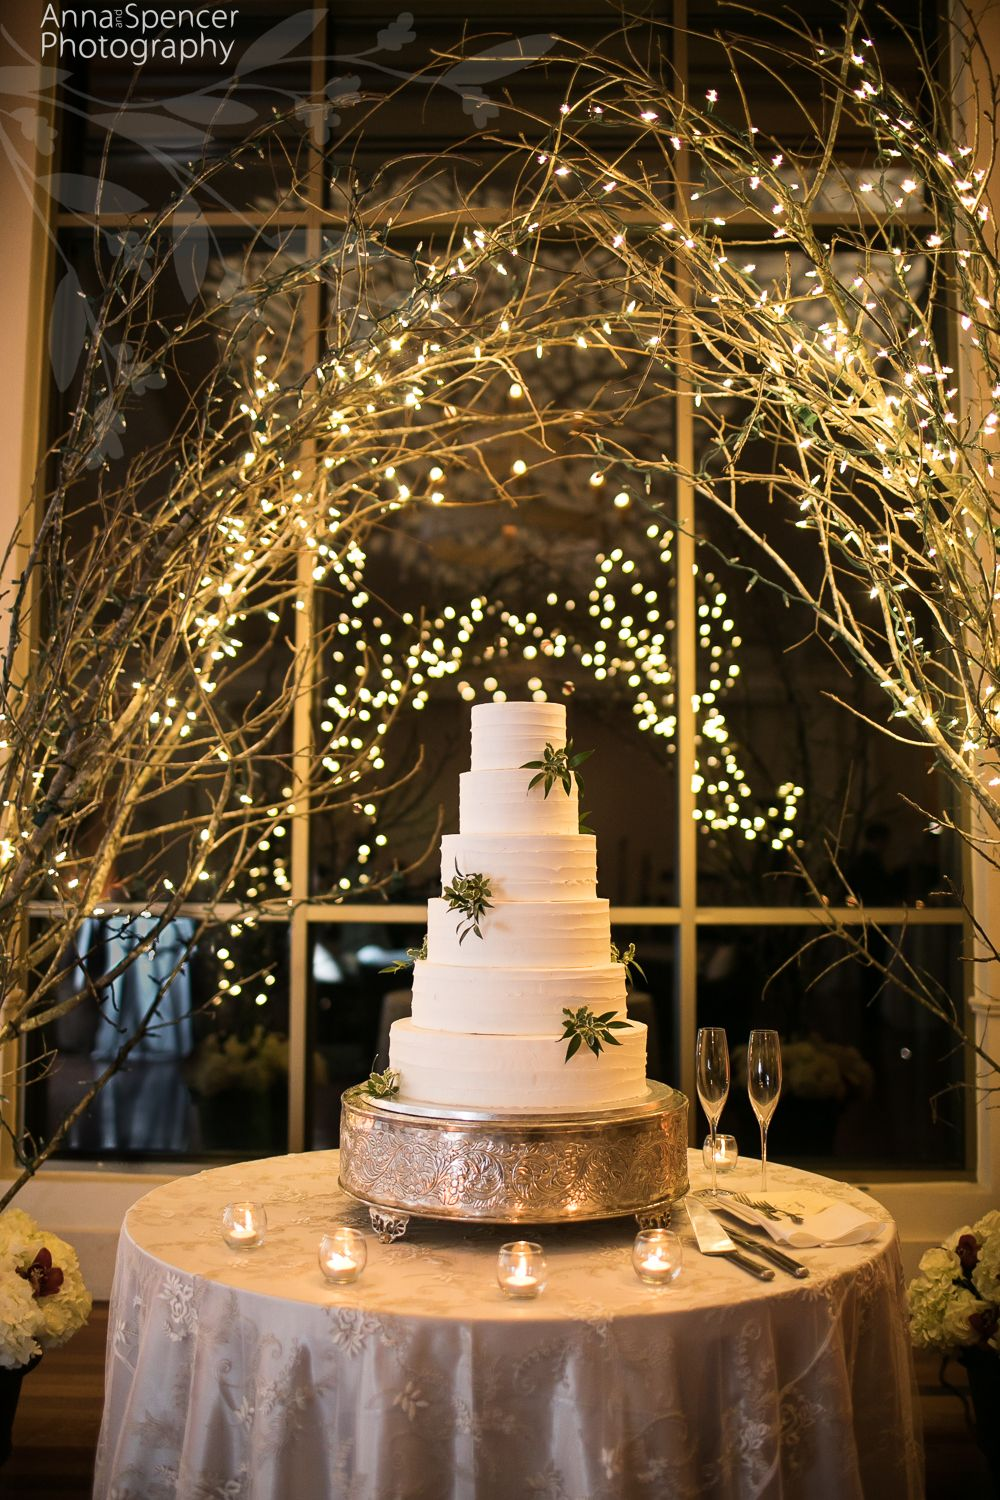 White Wedding Cake Surrounded By Branches And Twinkle Lights